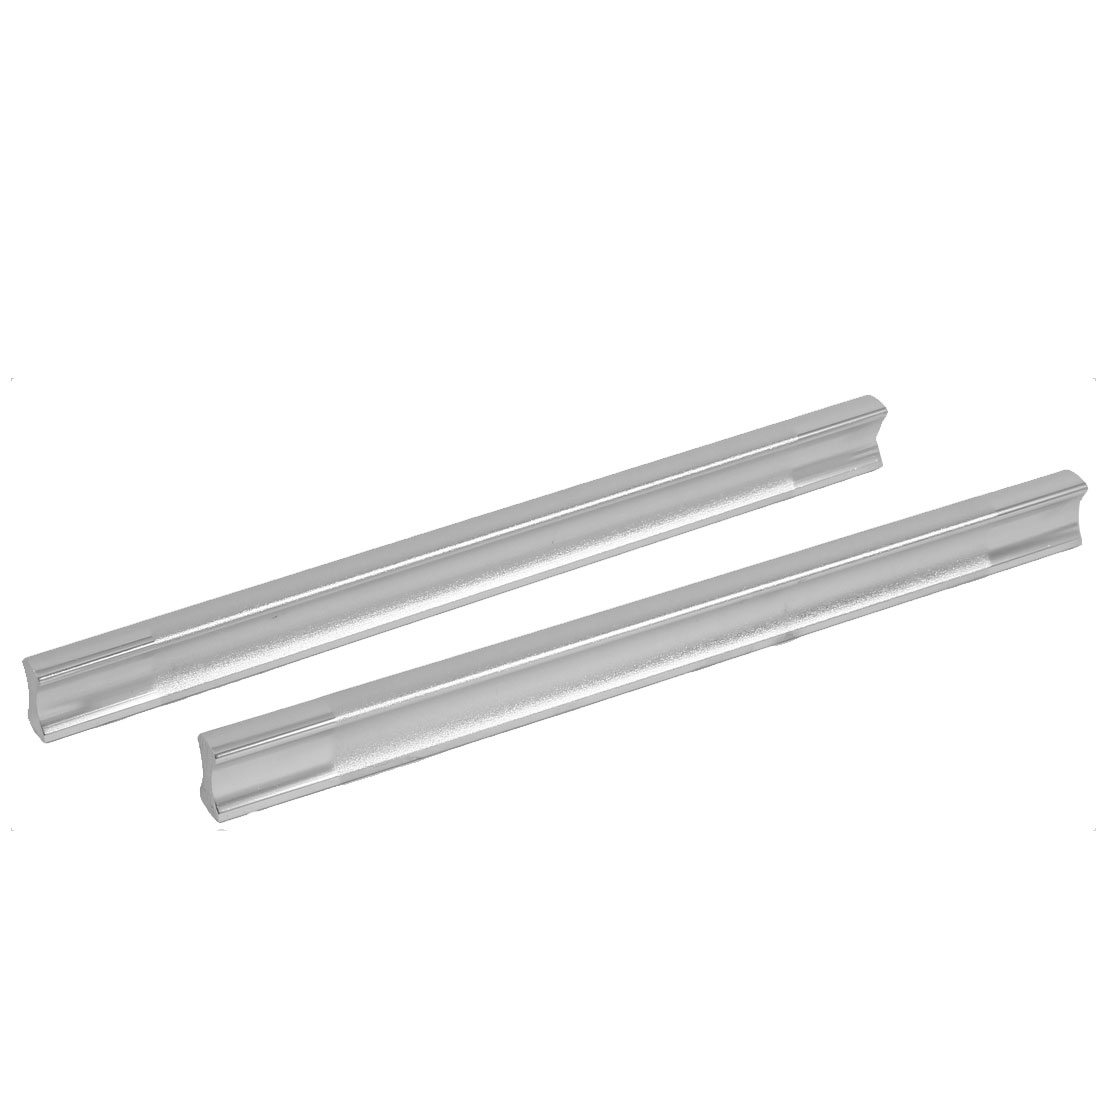 160mm Mounting Hole Distance Furniture Cupboard Door Pull Handles 2pcs